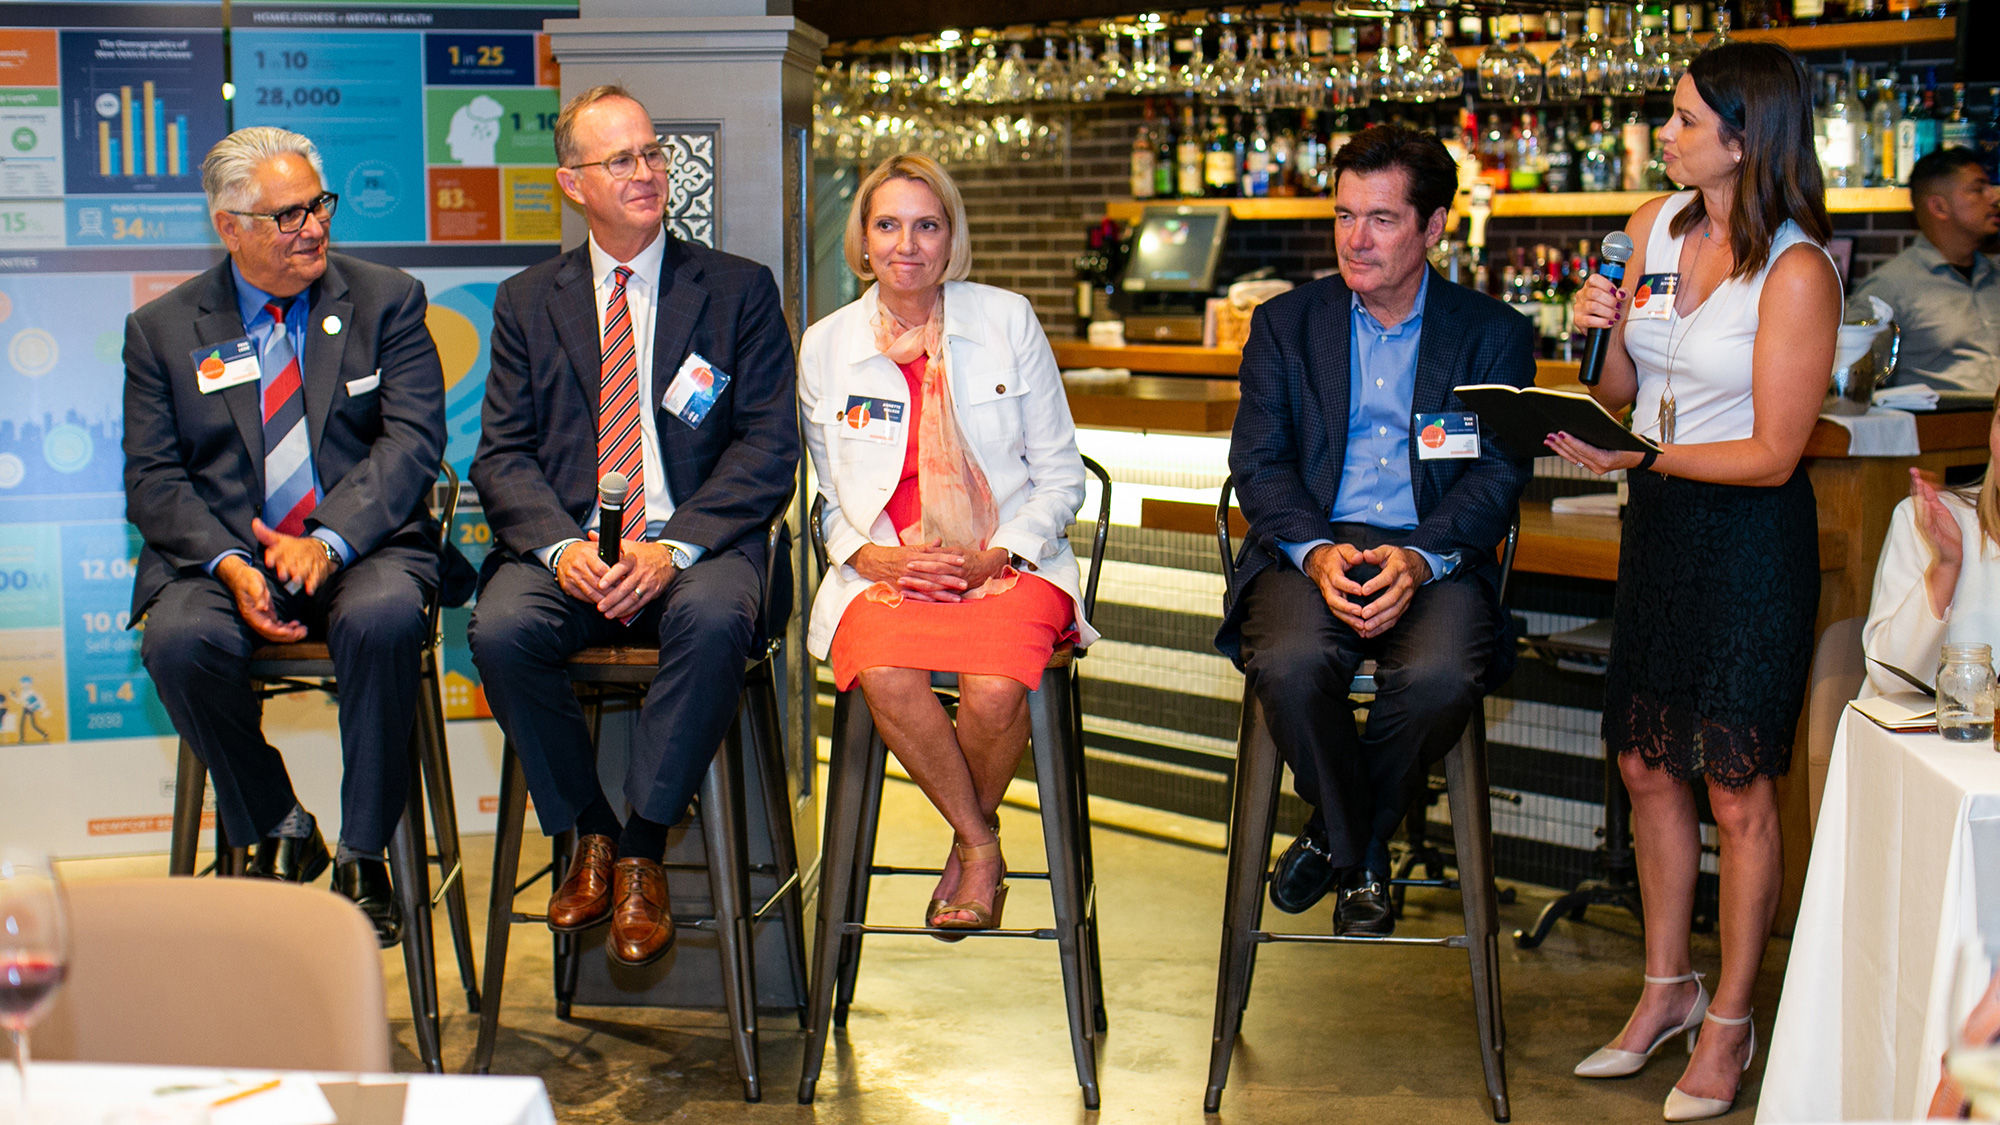 Panelists for Gensler Newport Beach's Design Forecast Local event